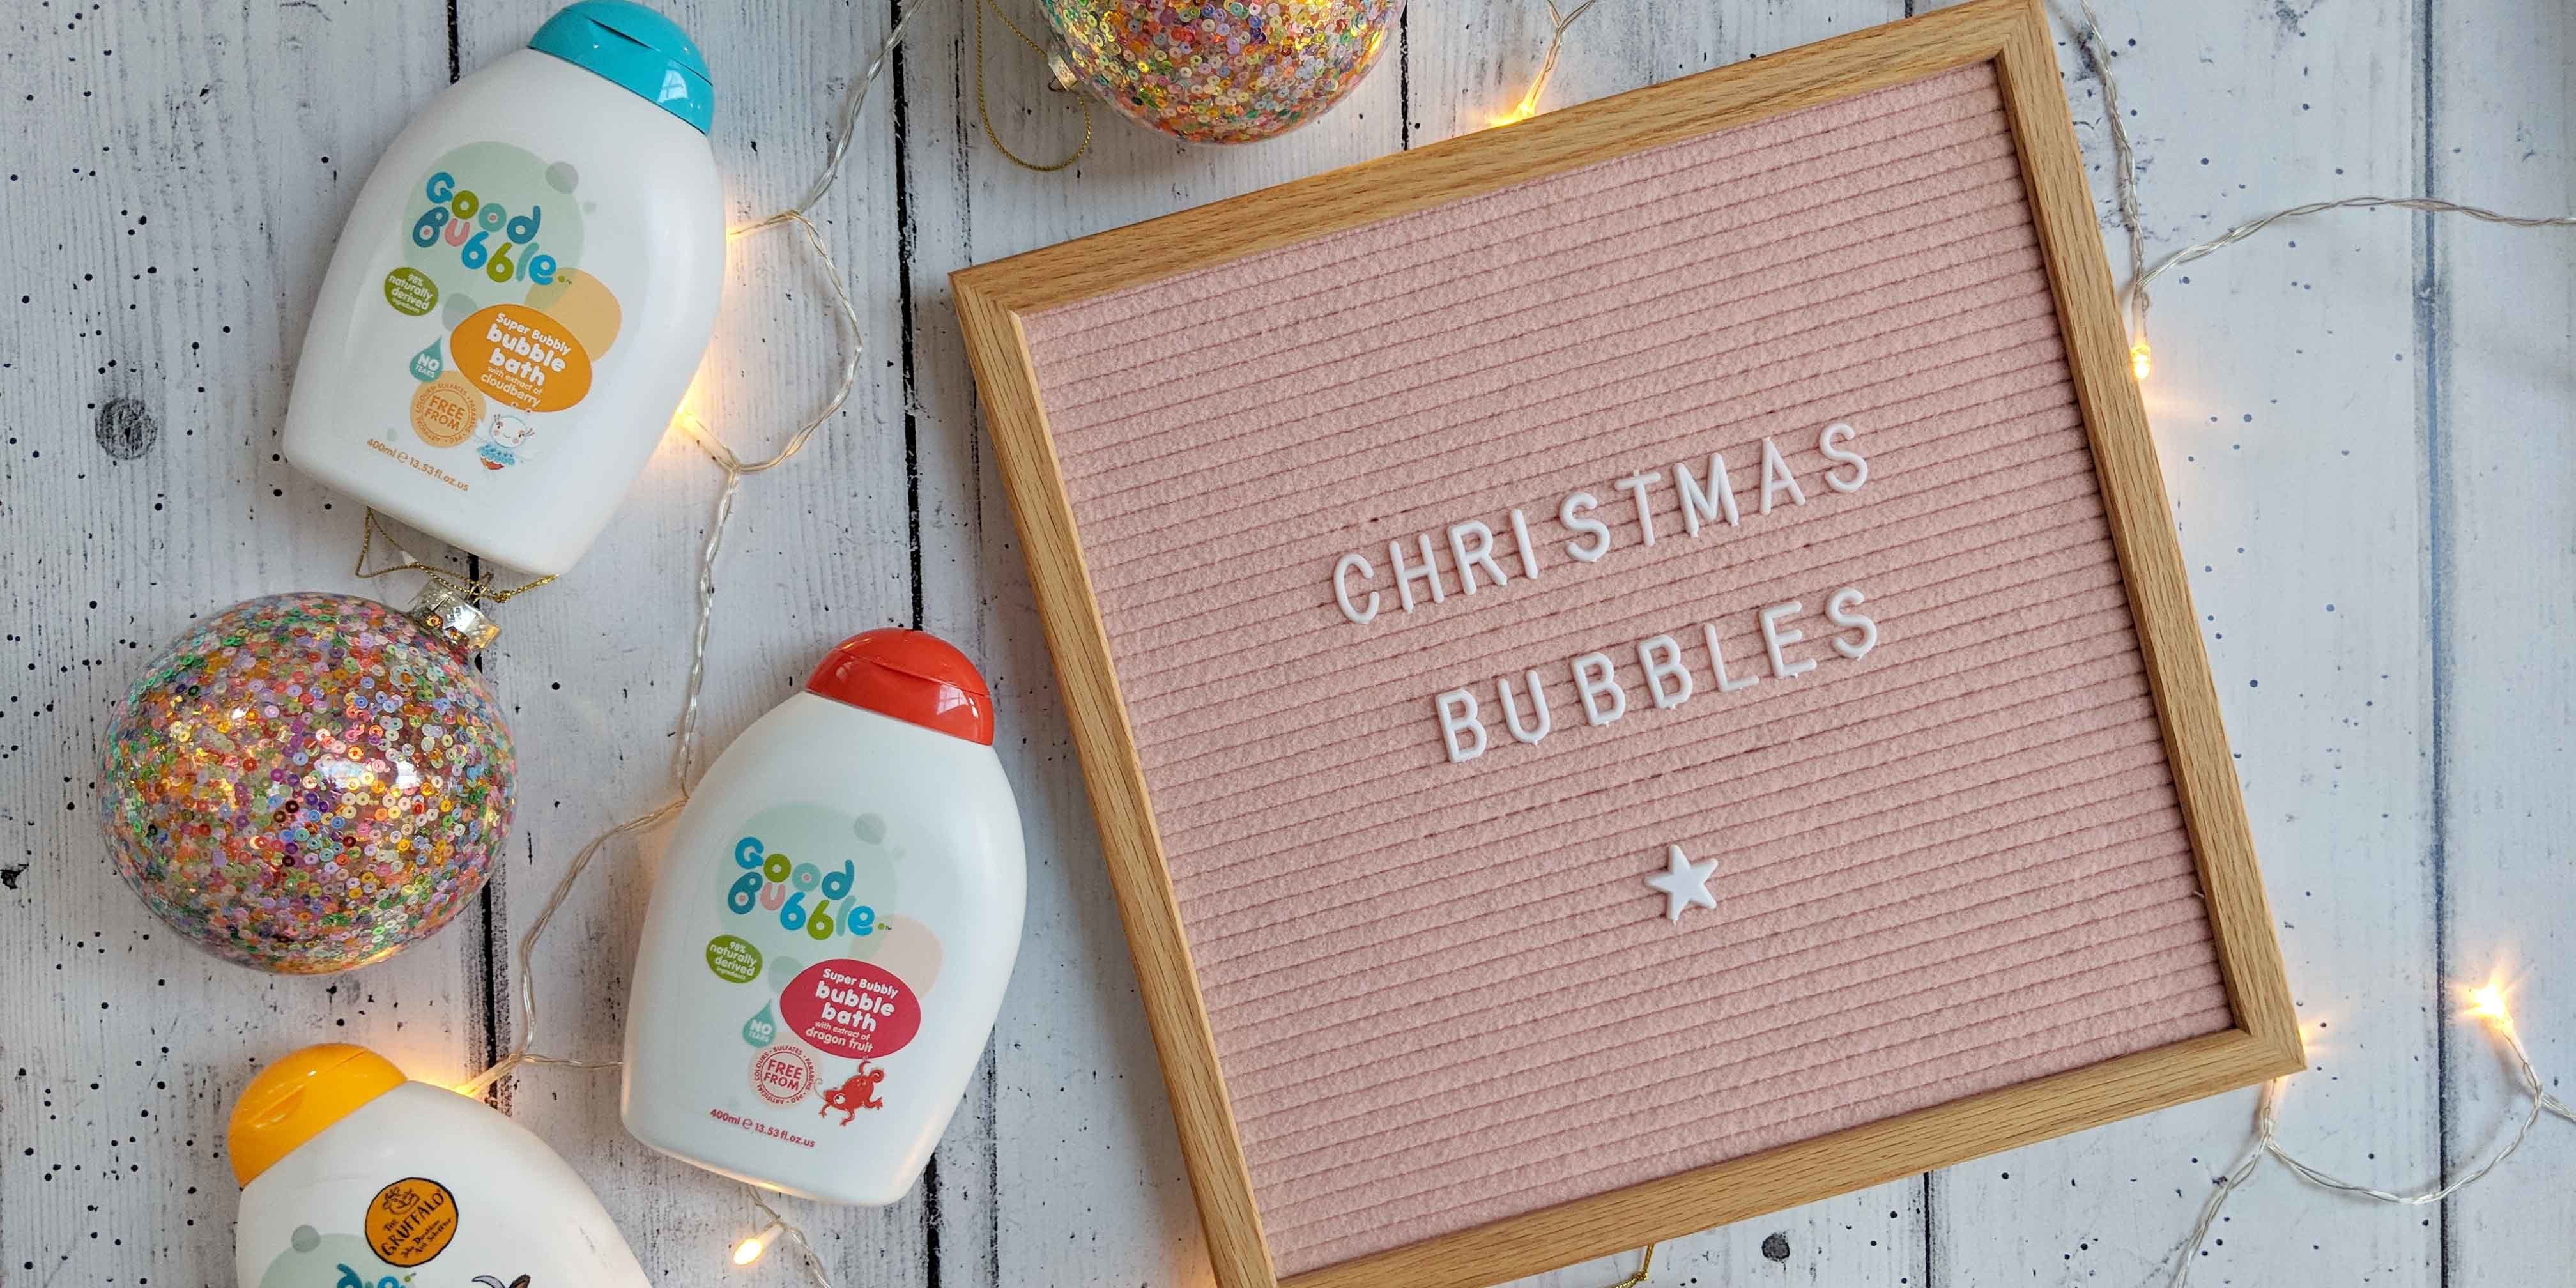 https://goodbubble.co.uk/uploads/images/Christmas-Bubbles-banner-updated.jpg